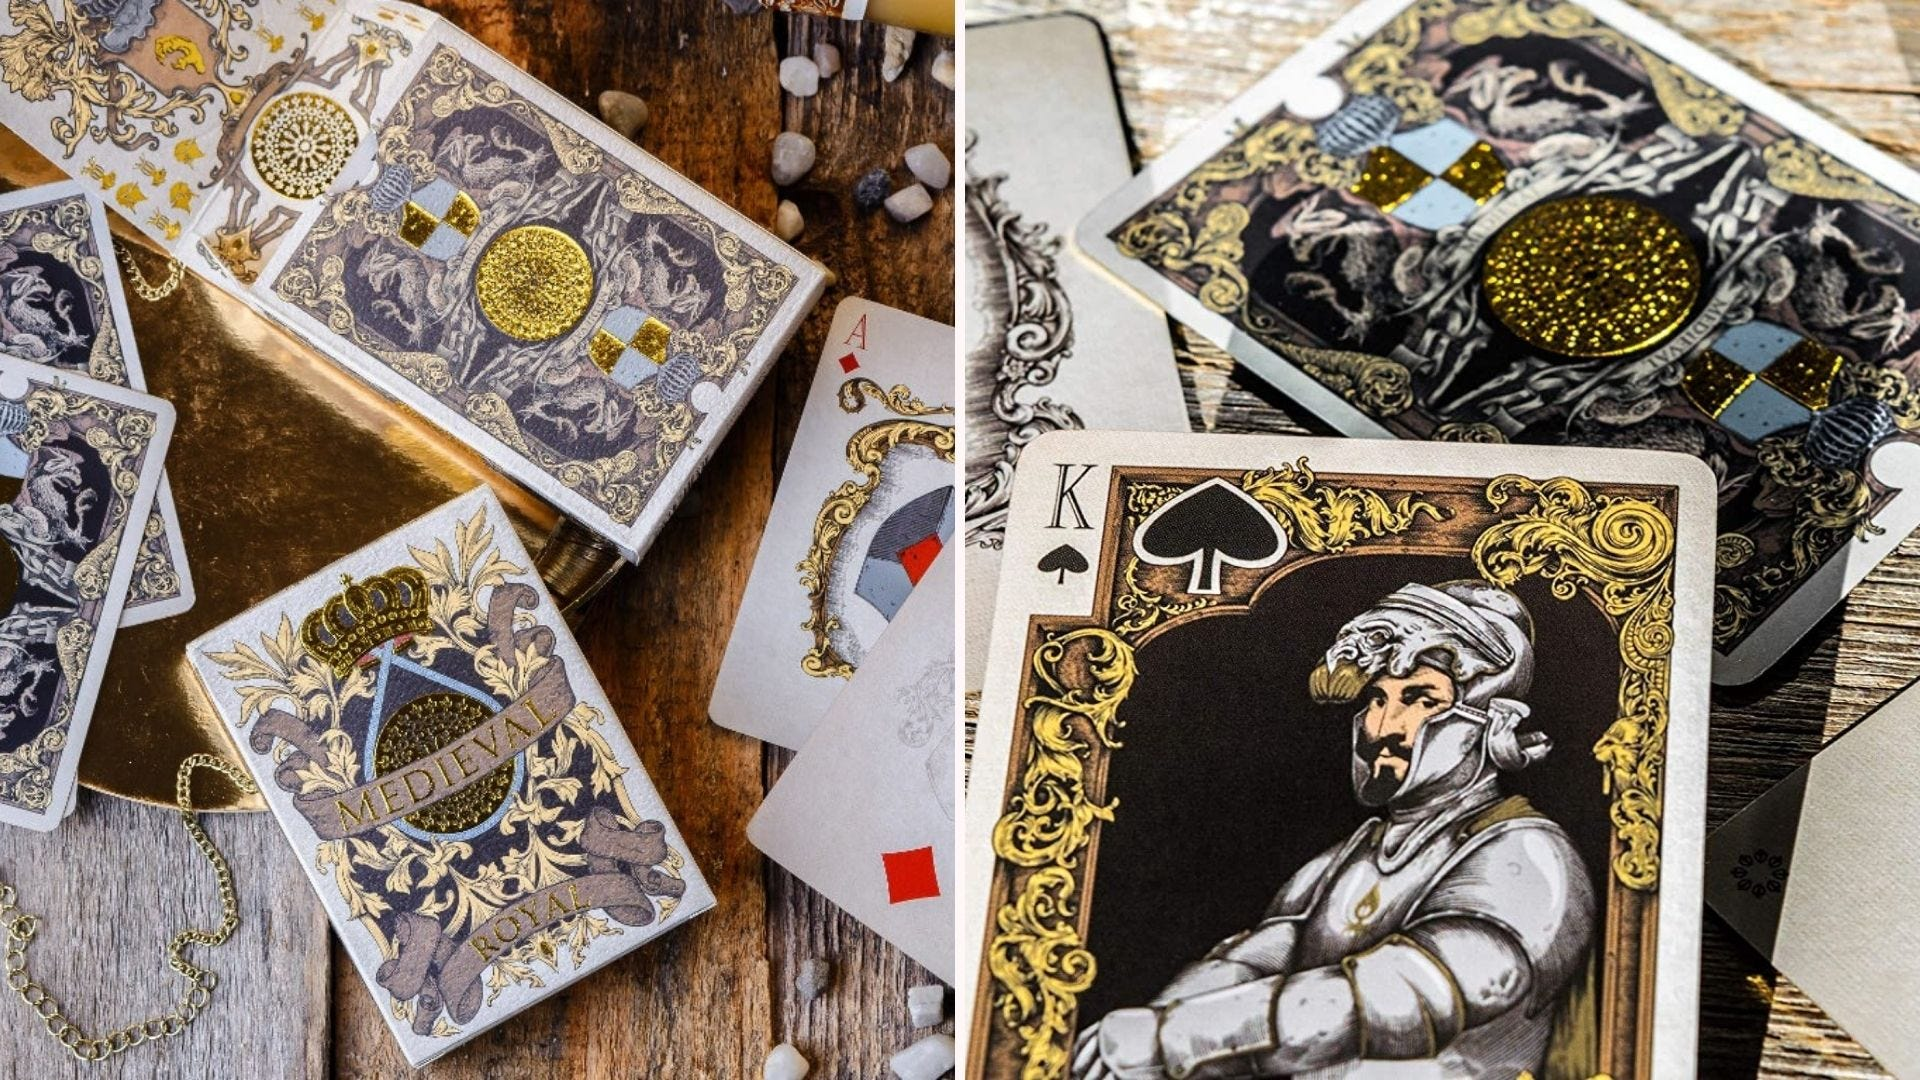 The Medieval Royal playing cards deck.